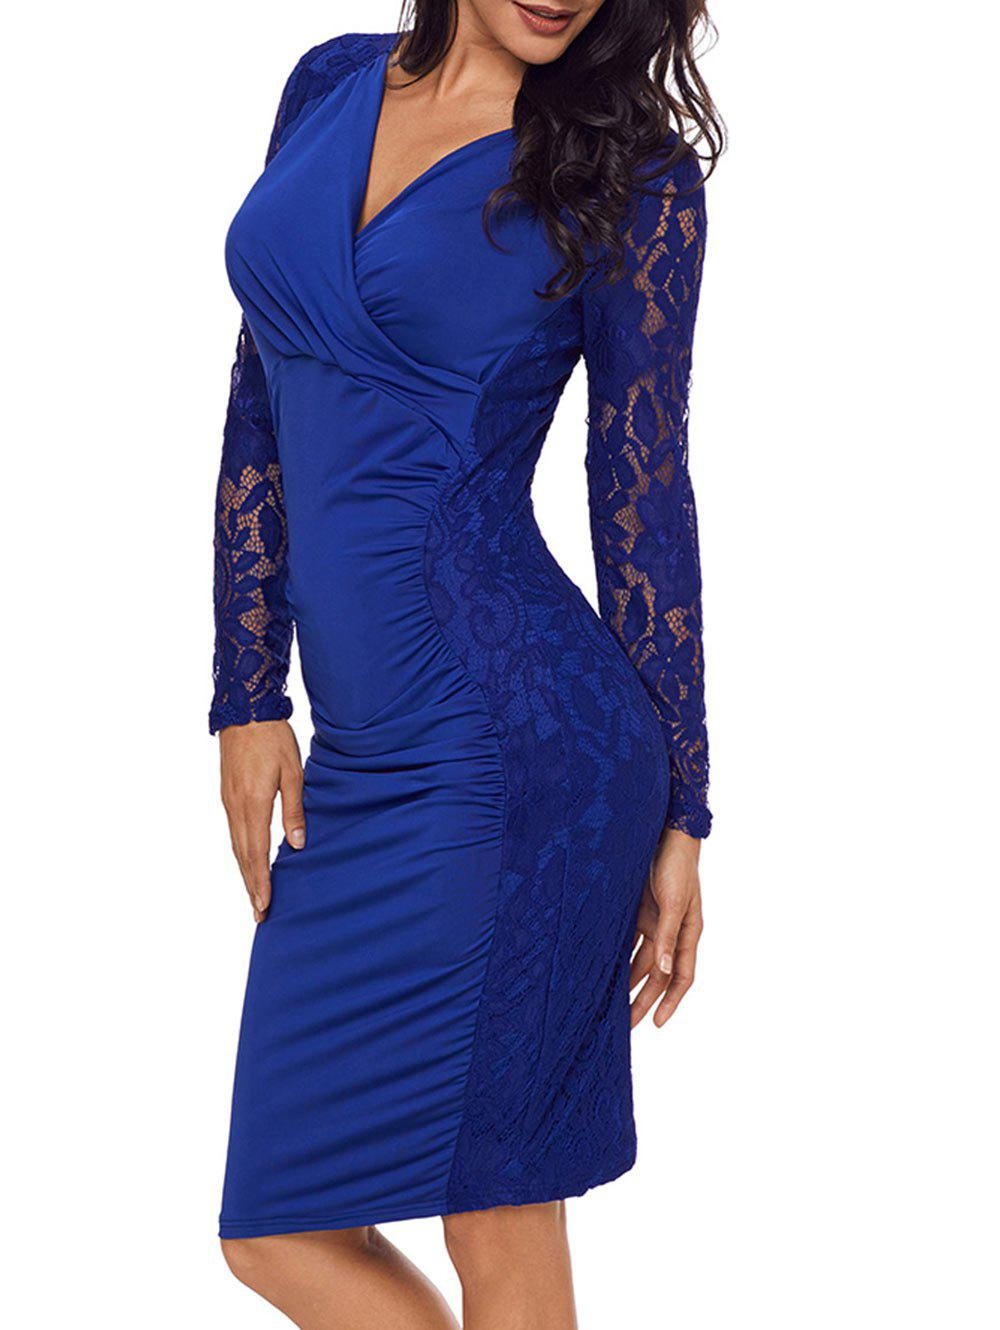 Lace Panel Surplice Neck Bodycon Dress - BLUE L